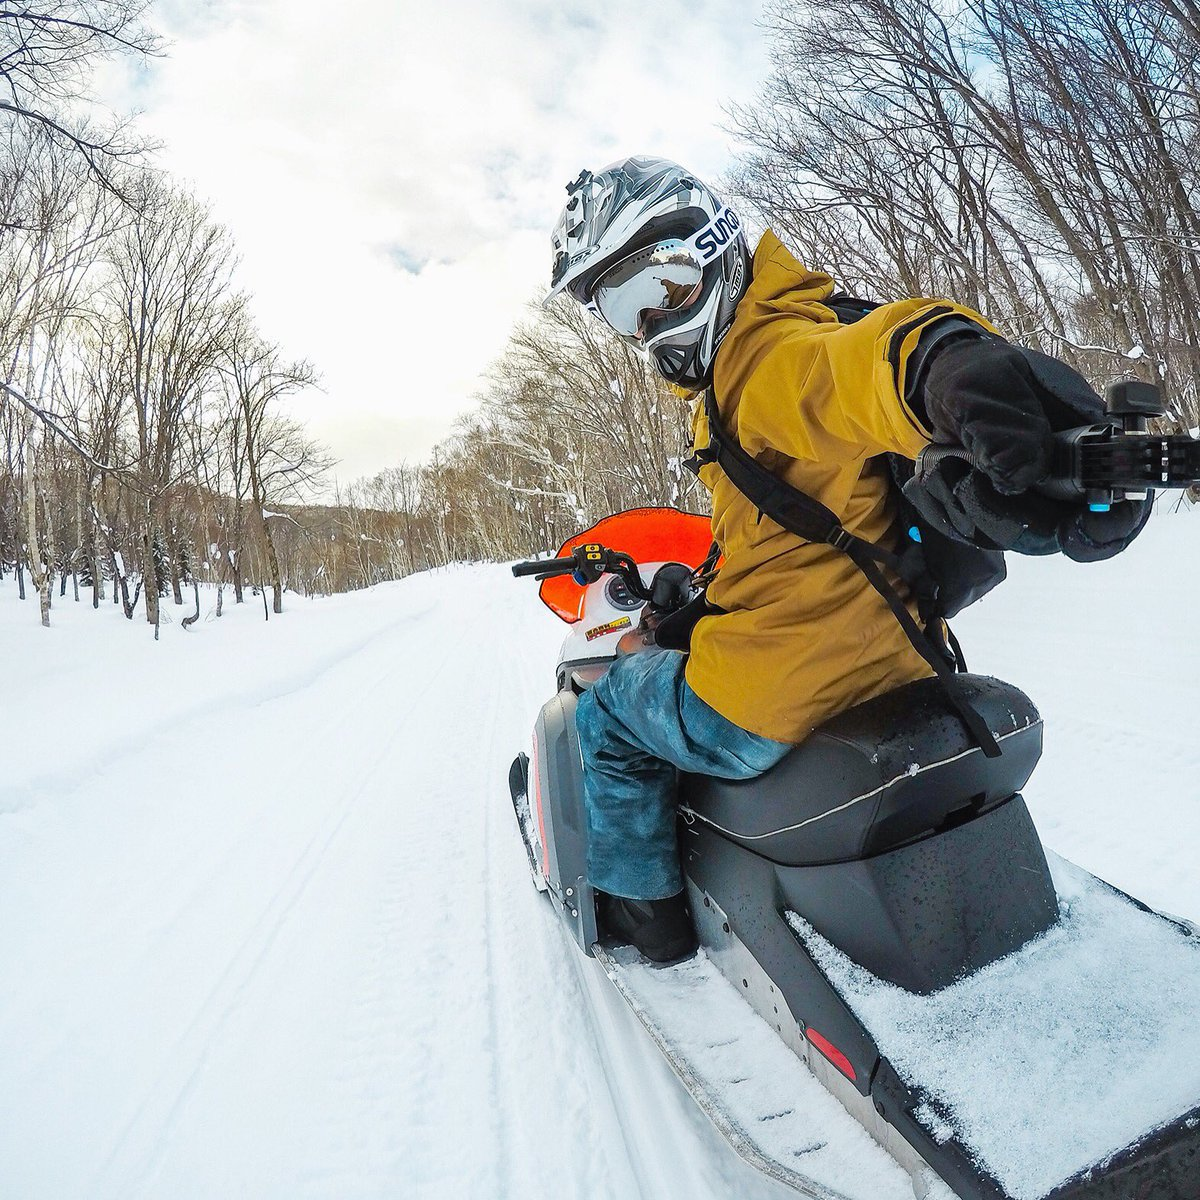 #GoProFamily member, Howard from GoPro Japan getting ready to fire up the #snowmobiles into a beautiful sunset.